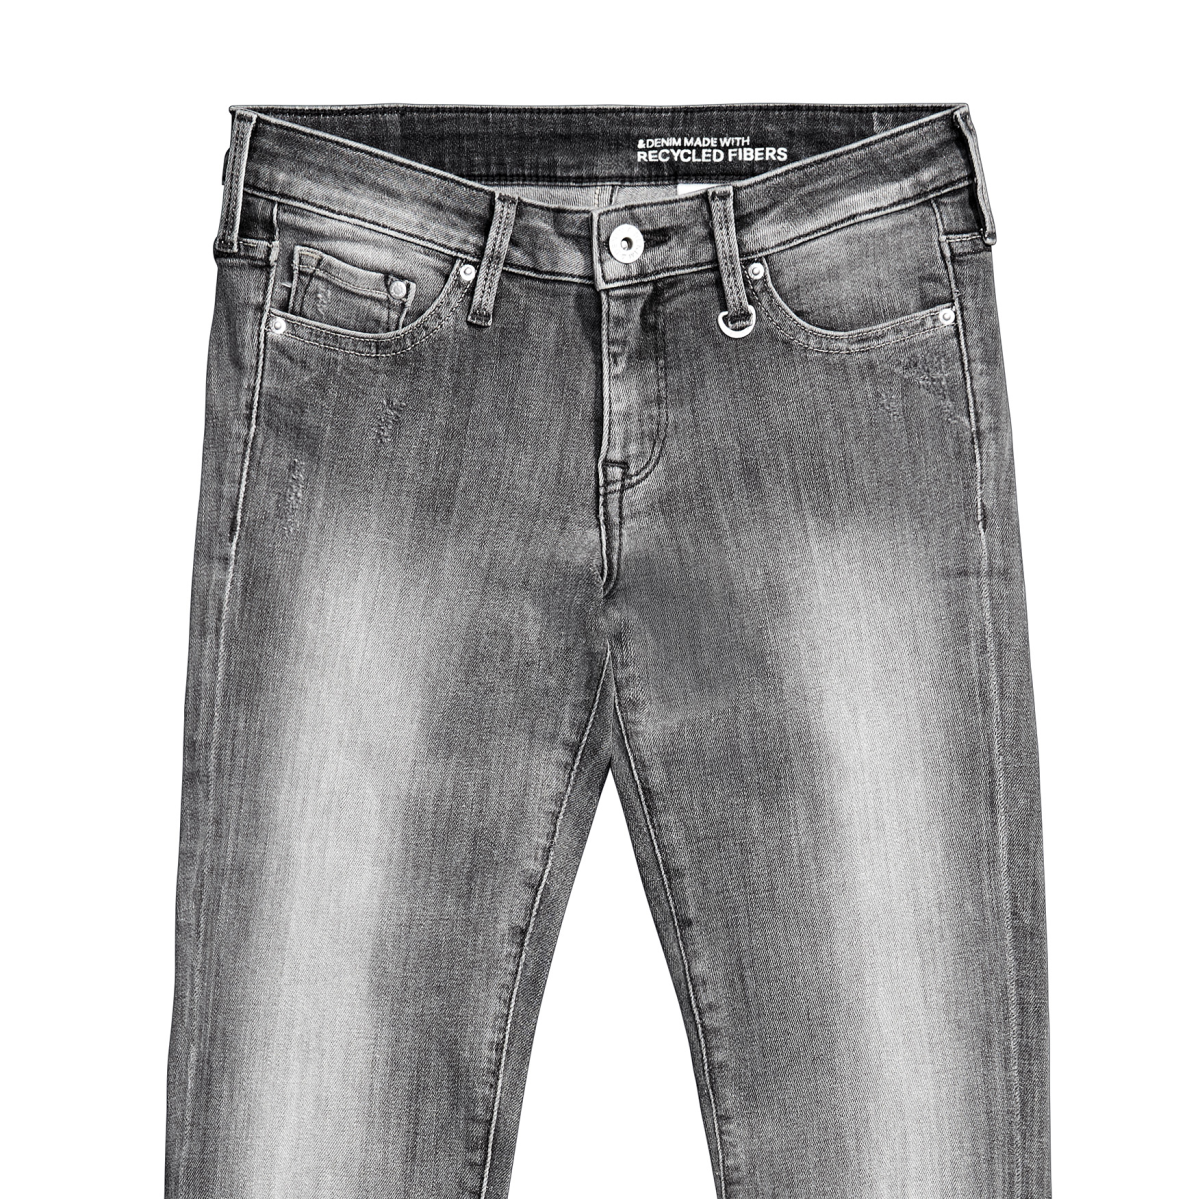 H&M recycled denim collection 2015